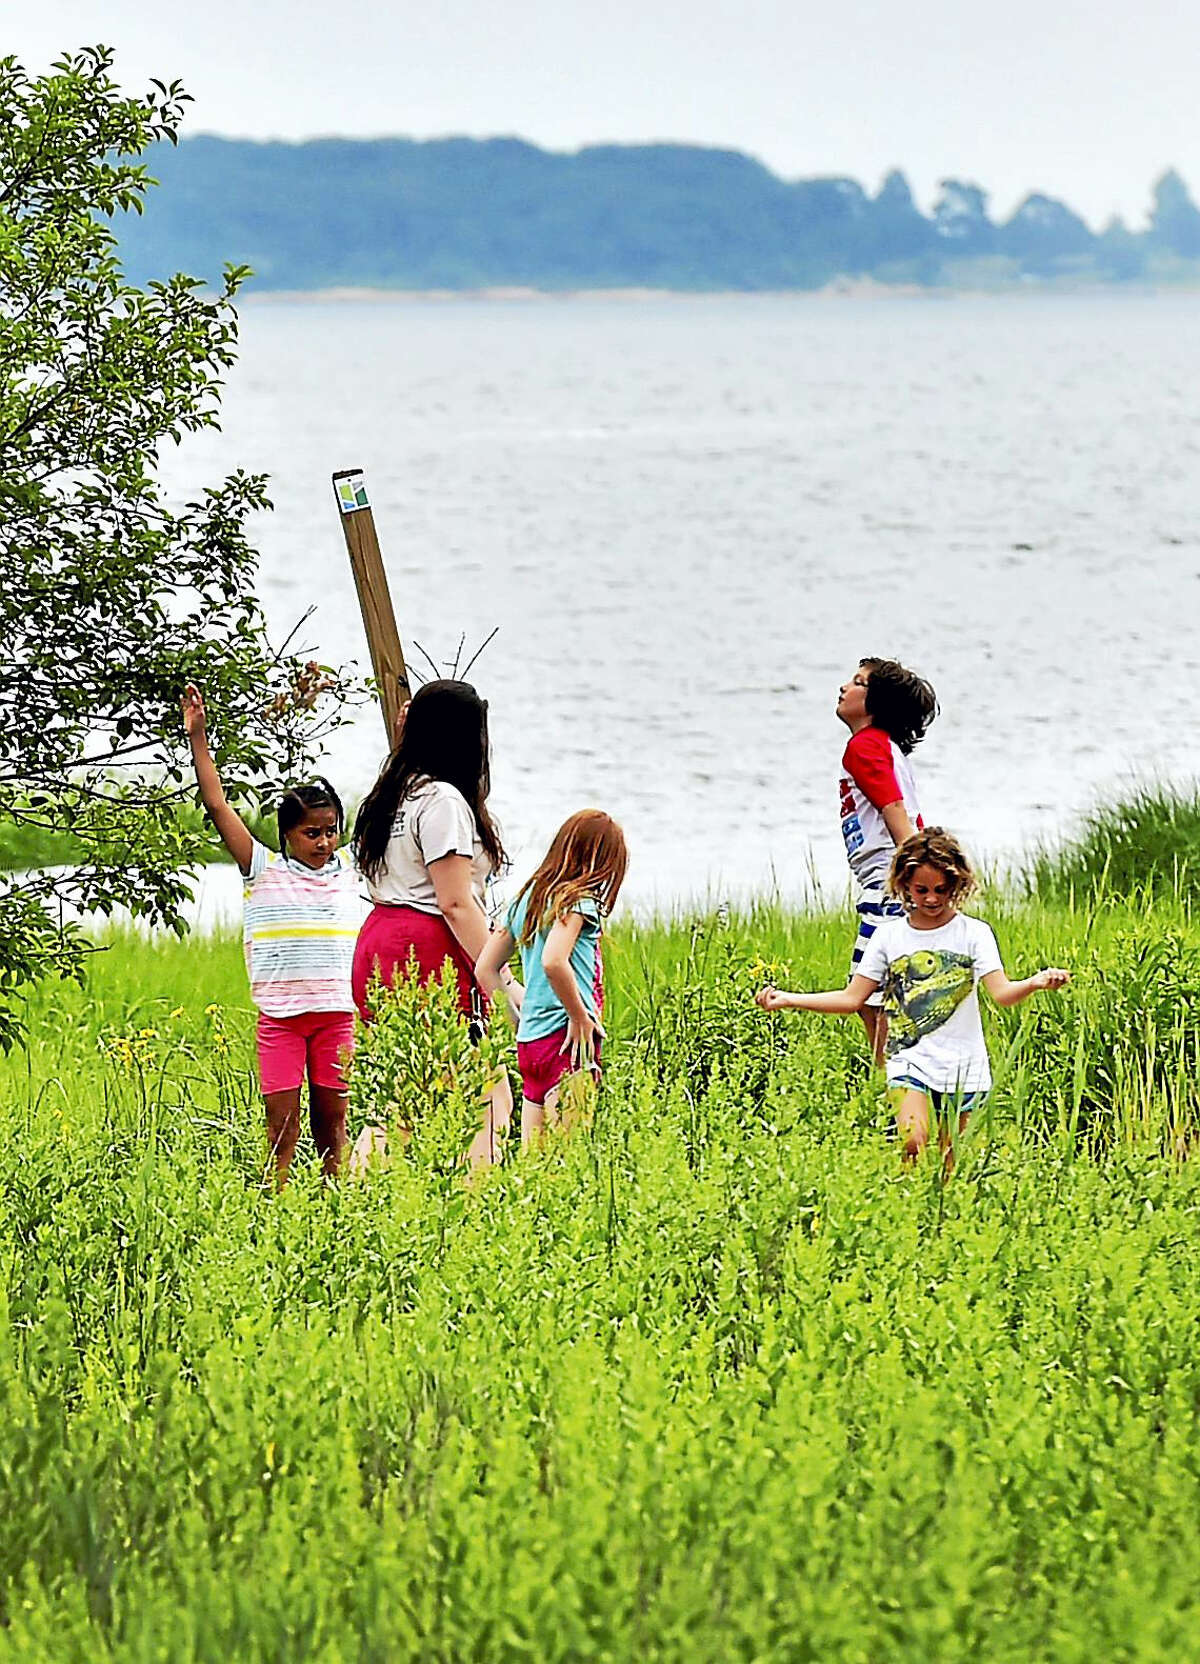 New Haven Land Trust Schooner Camp campers explore the New Haven Land Trust Long Wharf Nature Preserve Thursday at the Sound School facilities in New Haven.